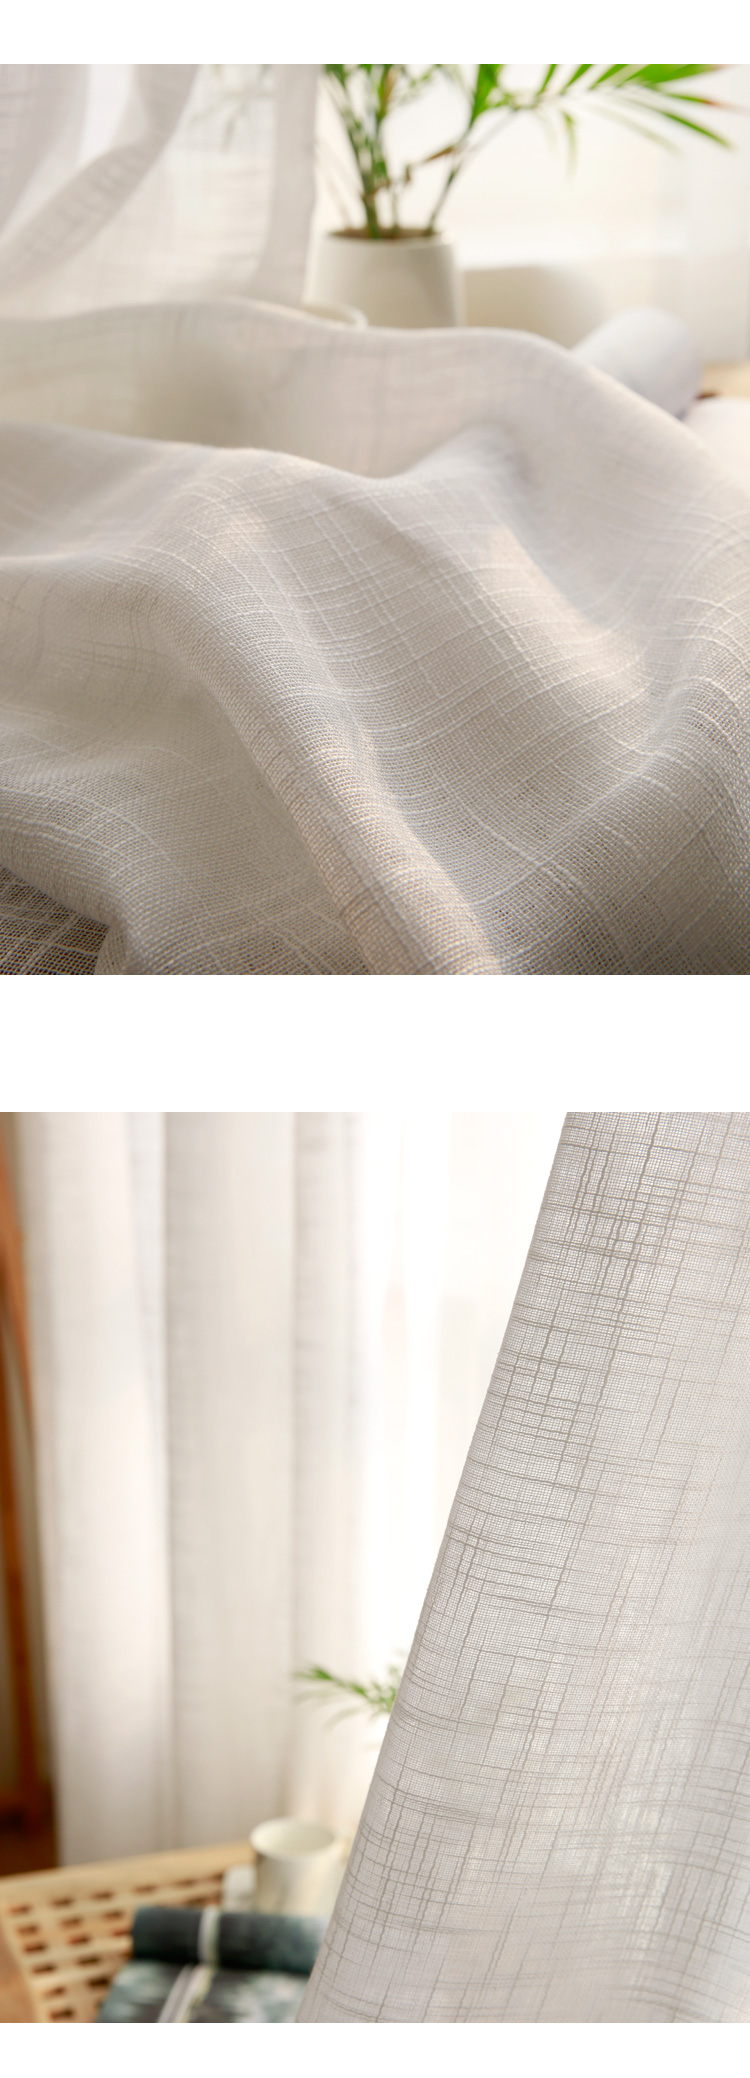 CITYINCITY Tulle  American Curtains for Living room Soft White Voile  solid Rural Tulle Curtain for bedroom ready made curtain07